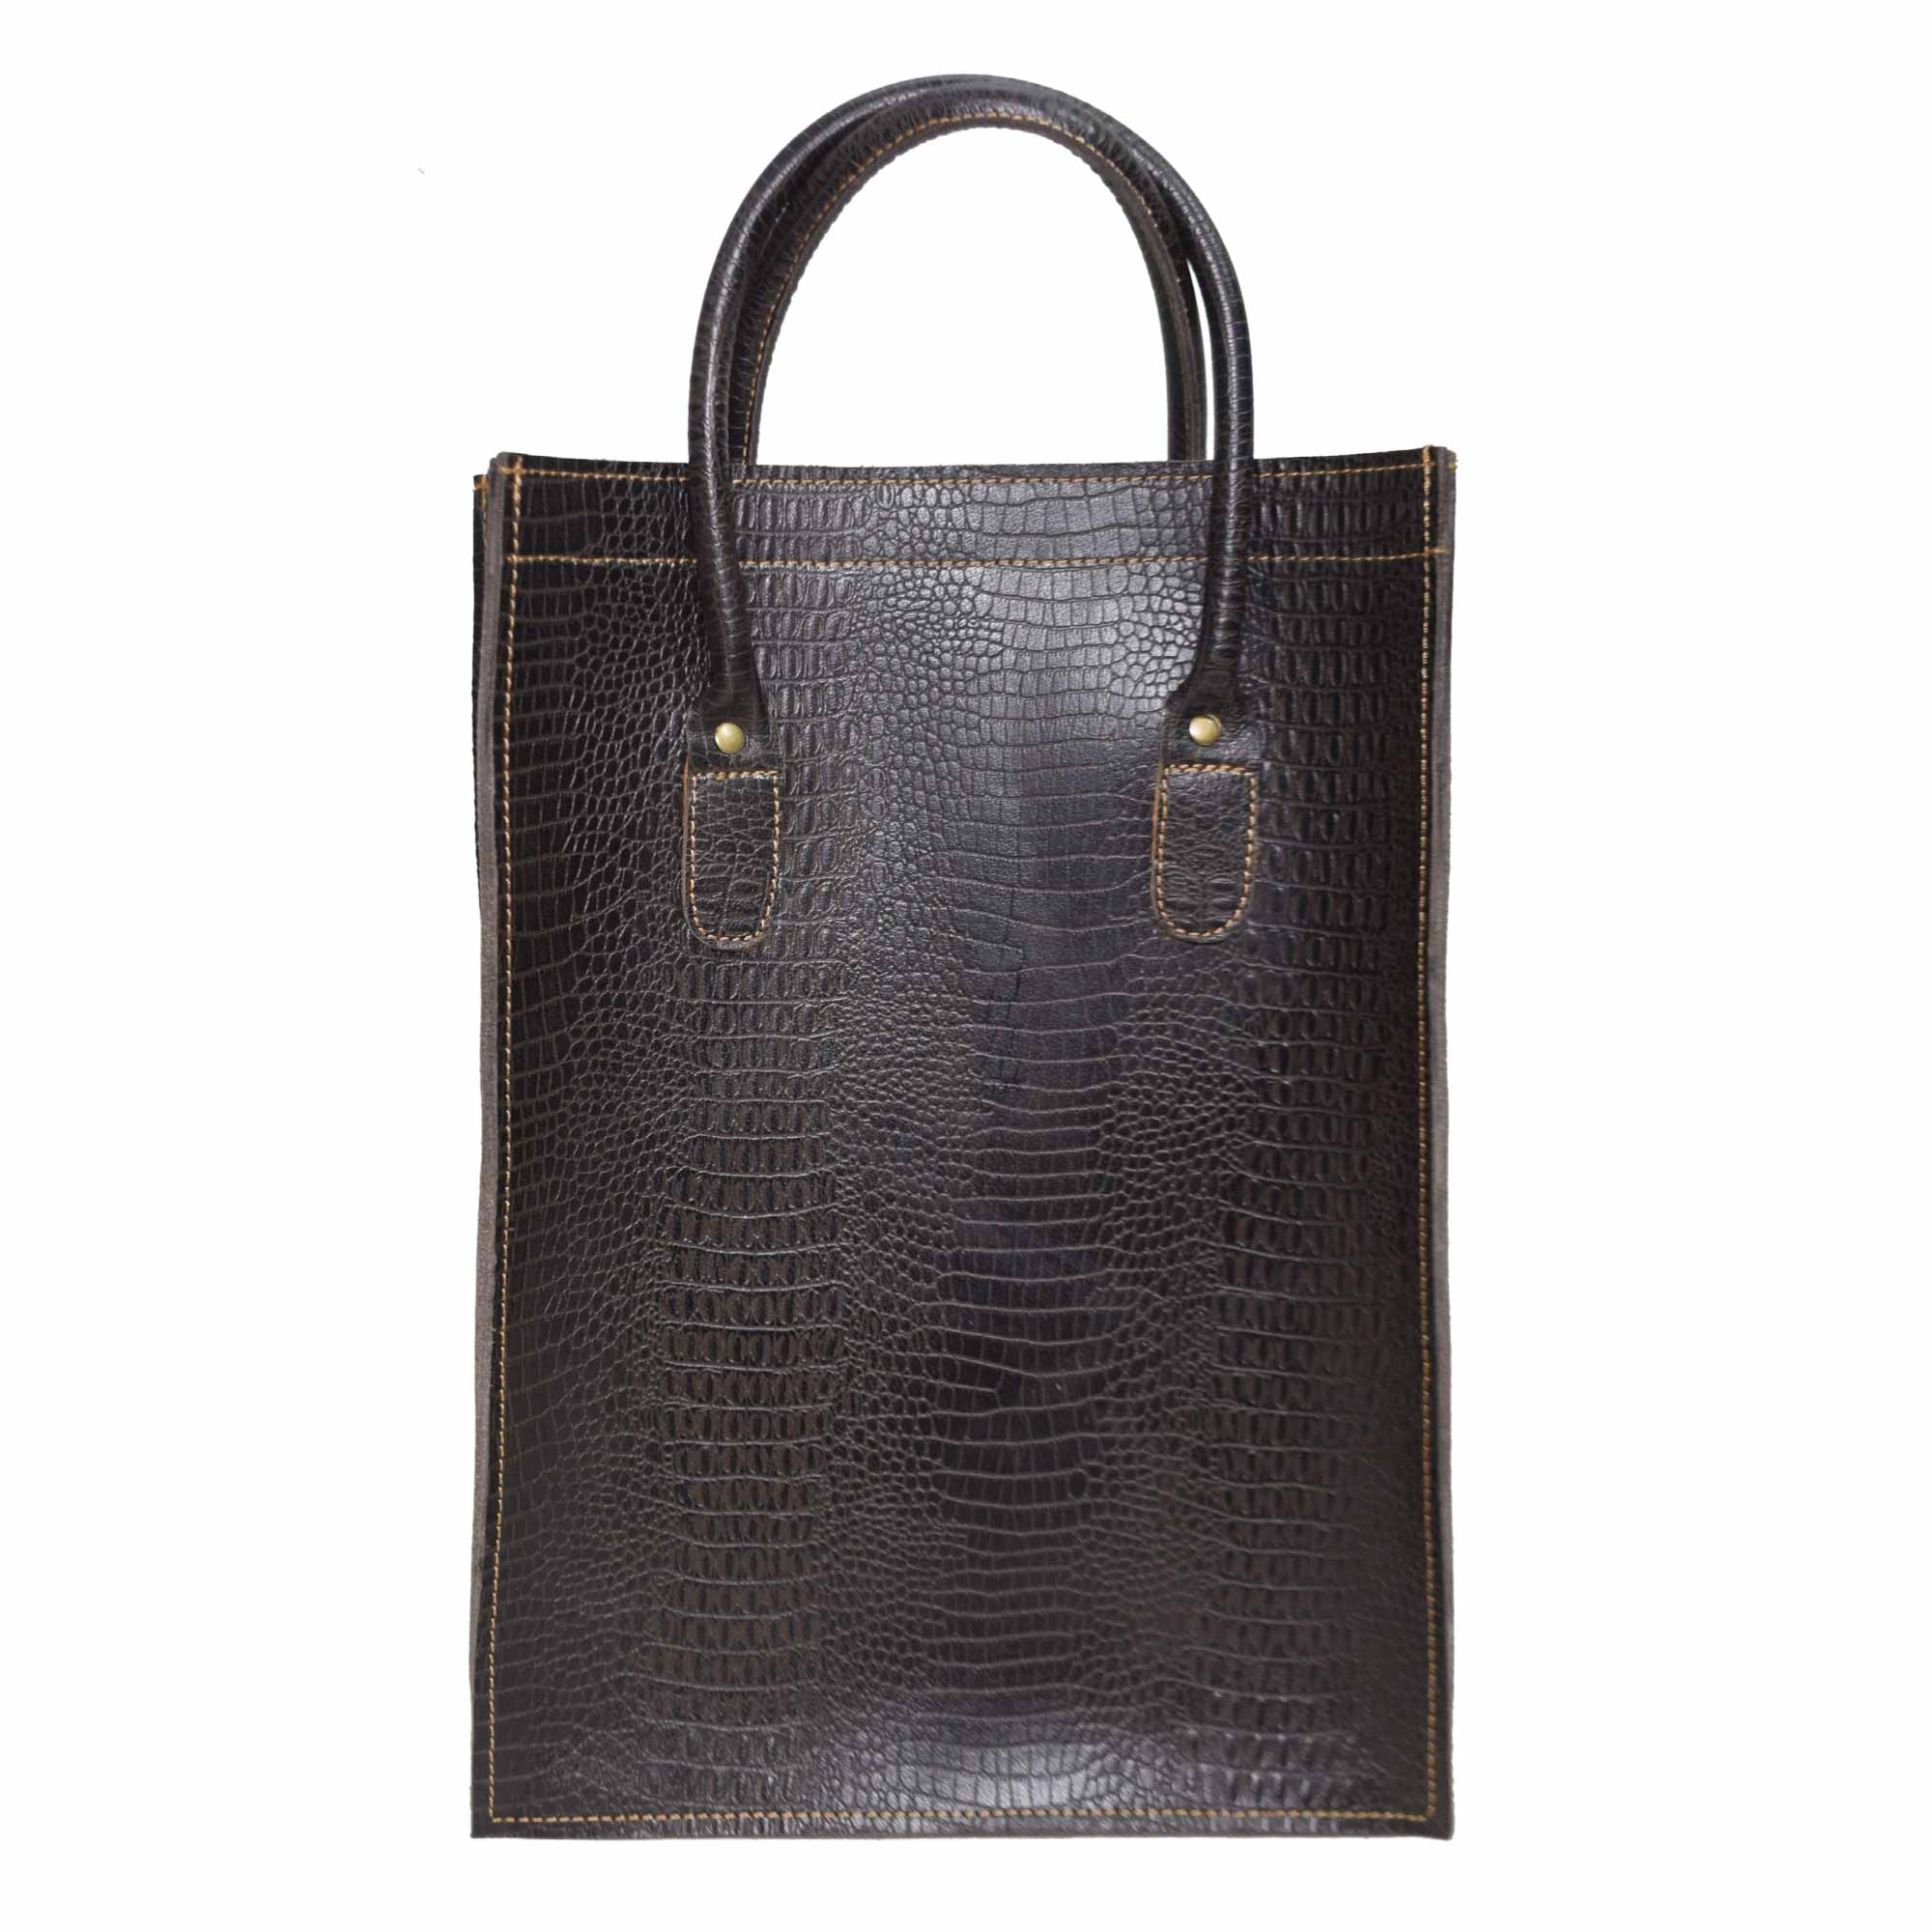 ARK BROWN LEATHER TOTE BAG WITH SHOULDER BELT IN CROCODILE STYLE LEATHER